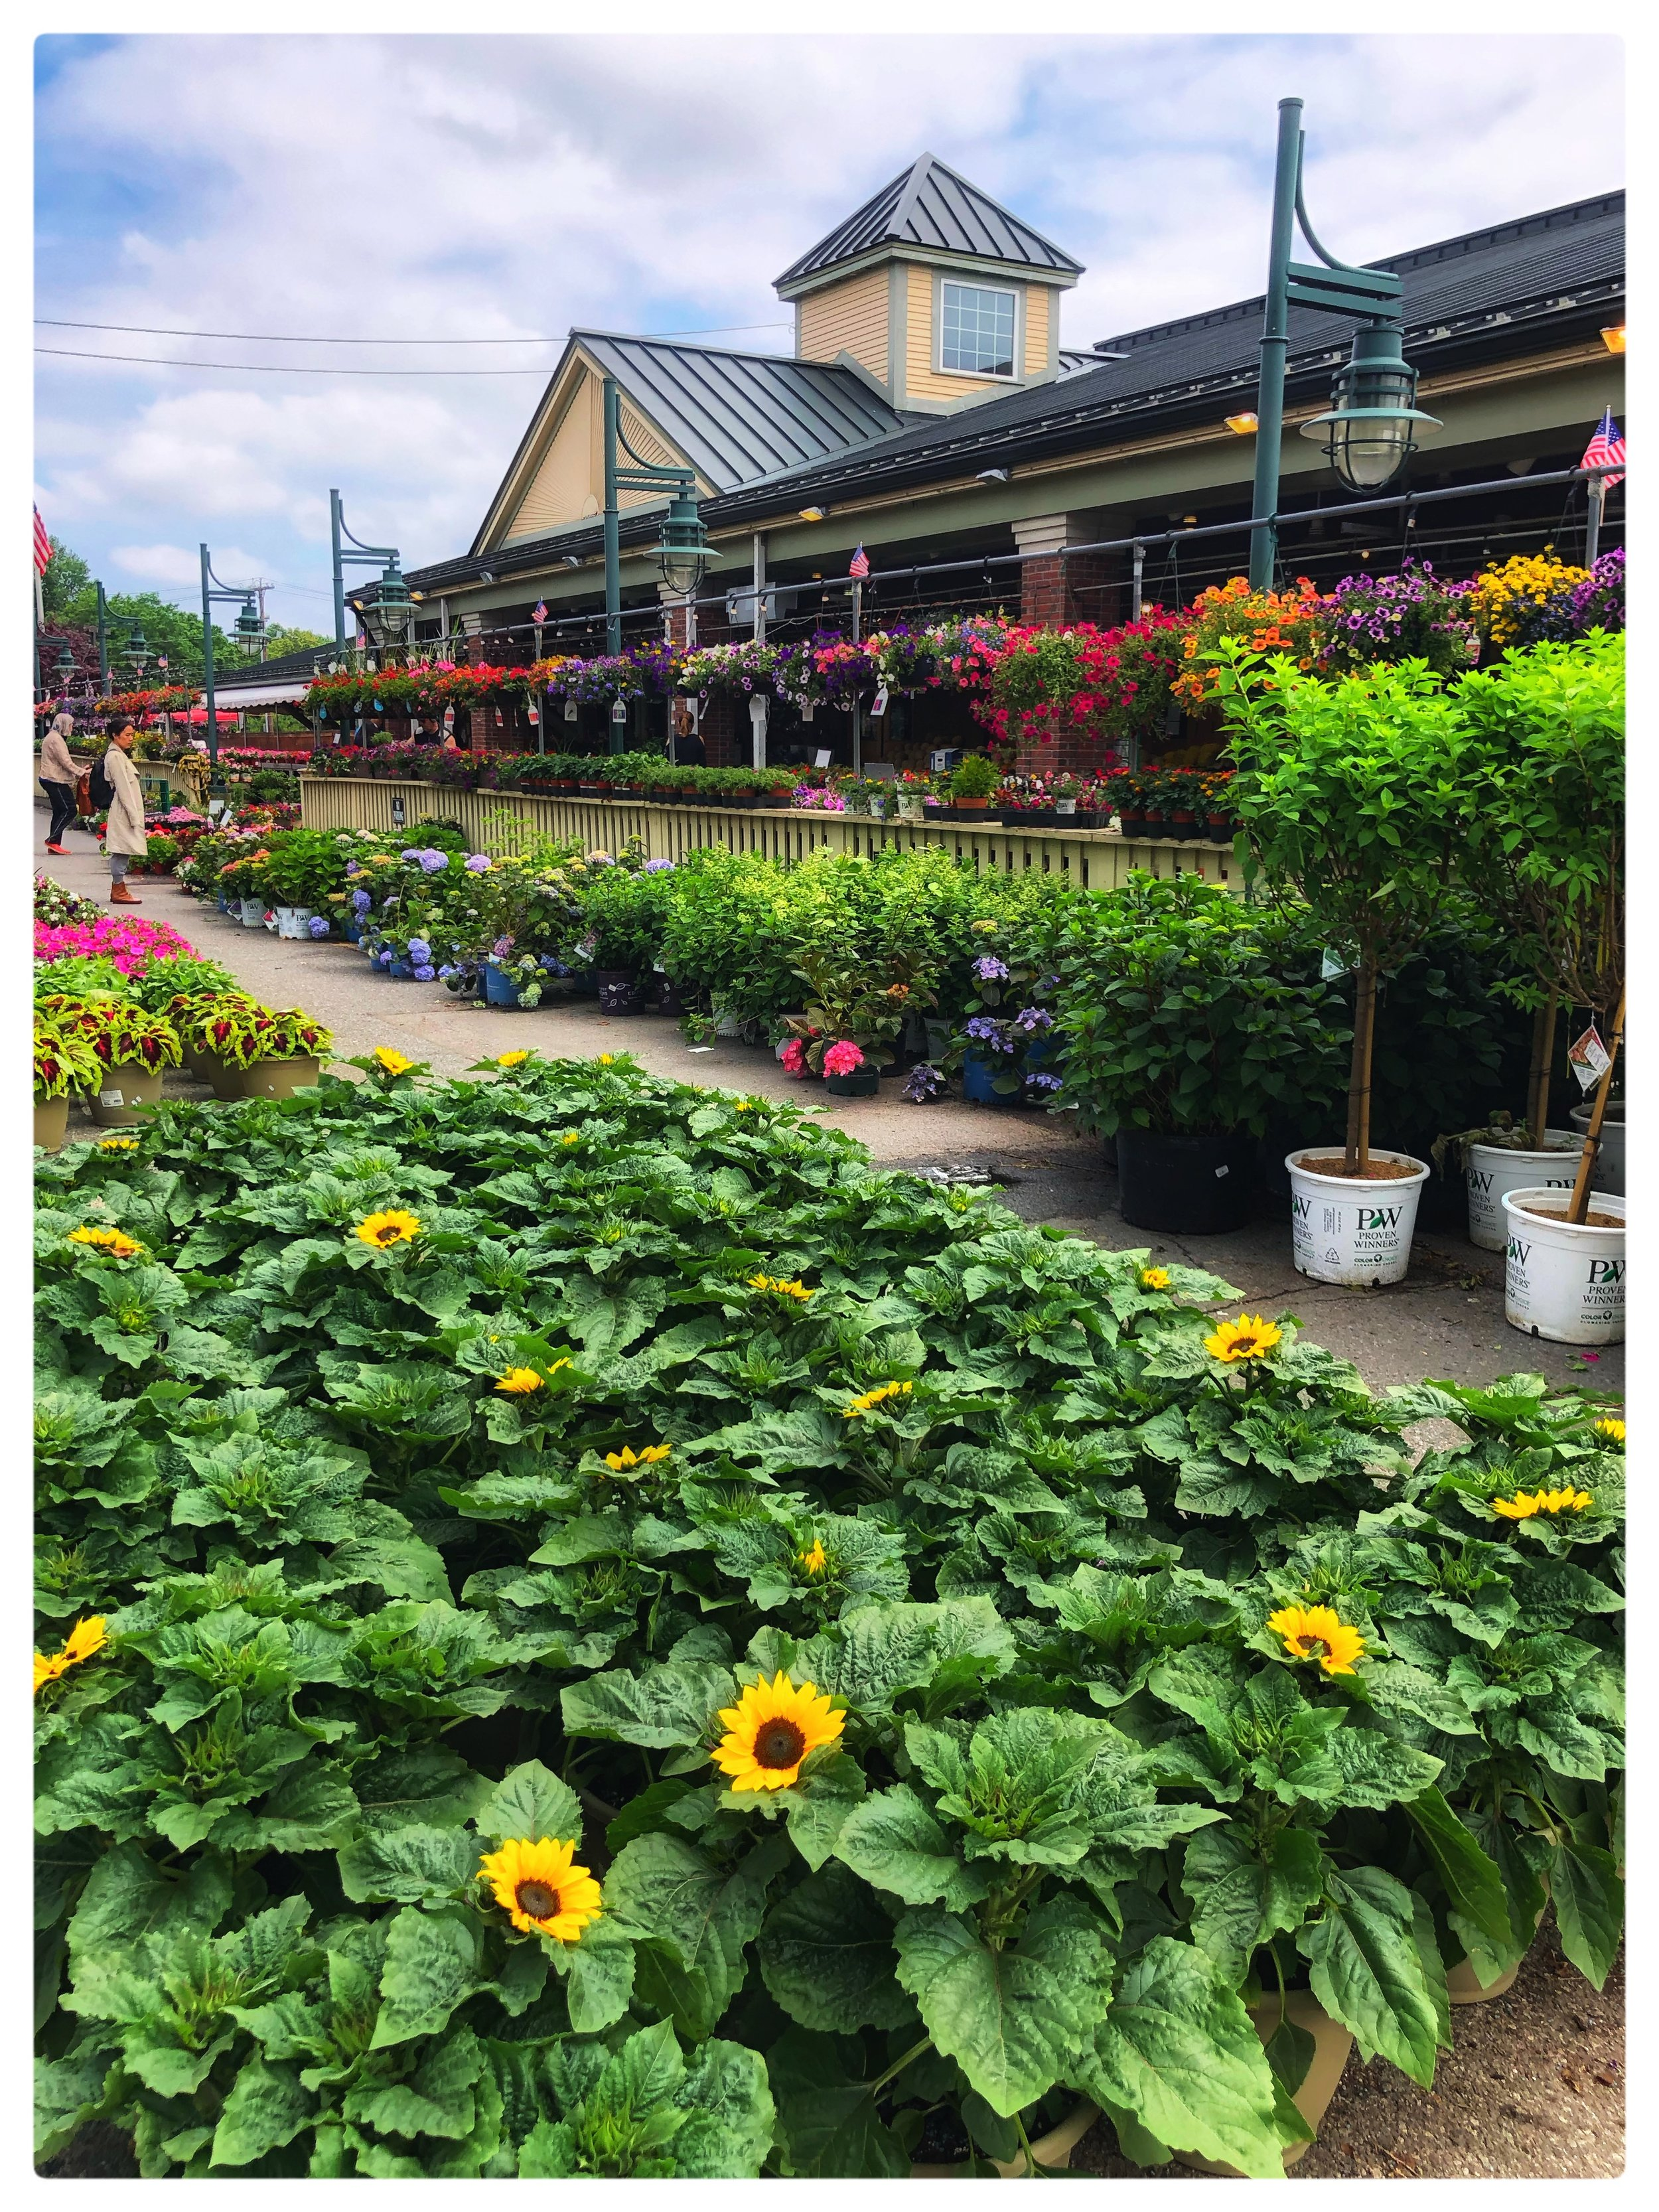 Our Plant Sale begins this week at Russo's